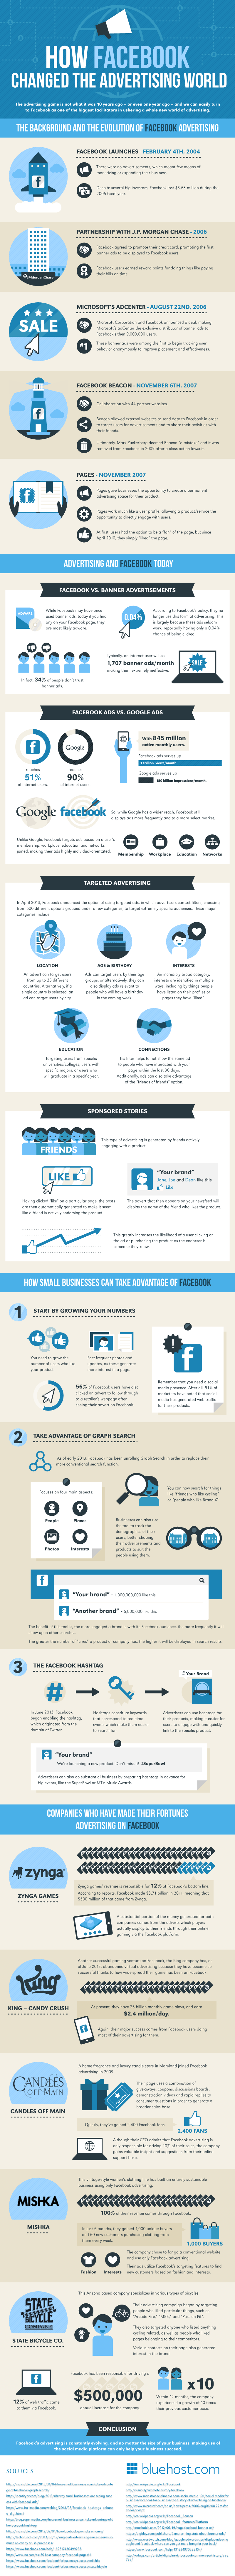 How Facebook Changed the Advertising World